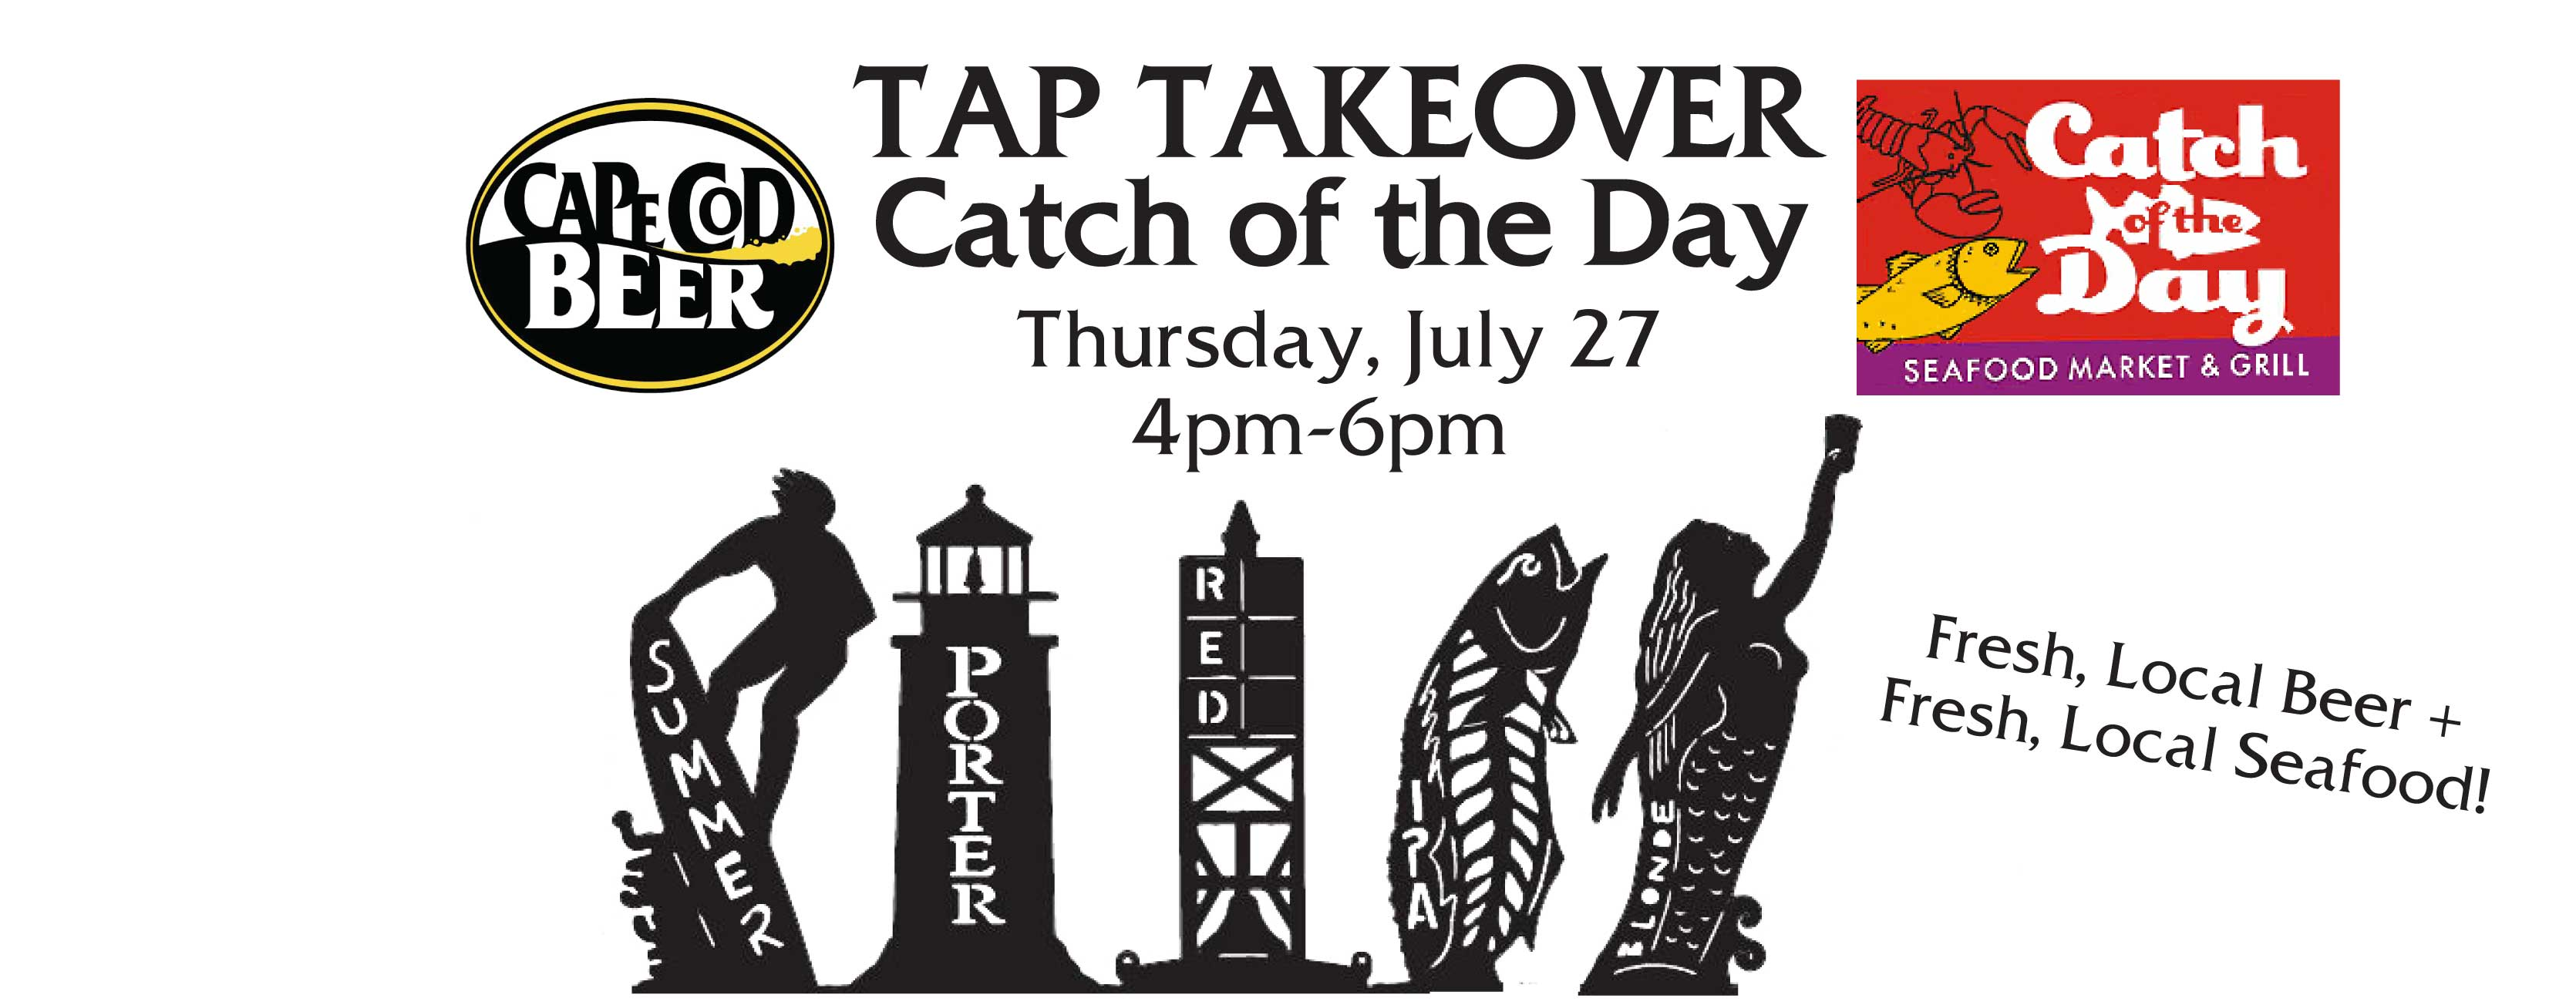 Cape Cod Beer Catch of the Day Tap Takeover